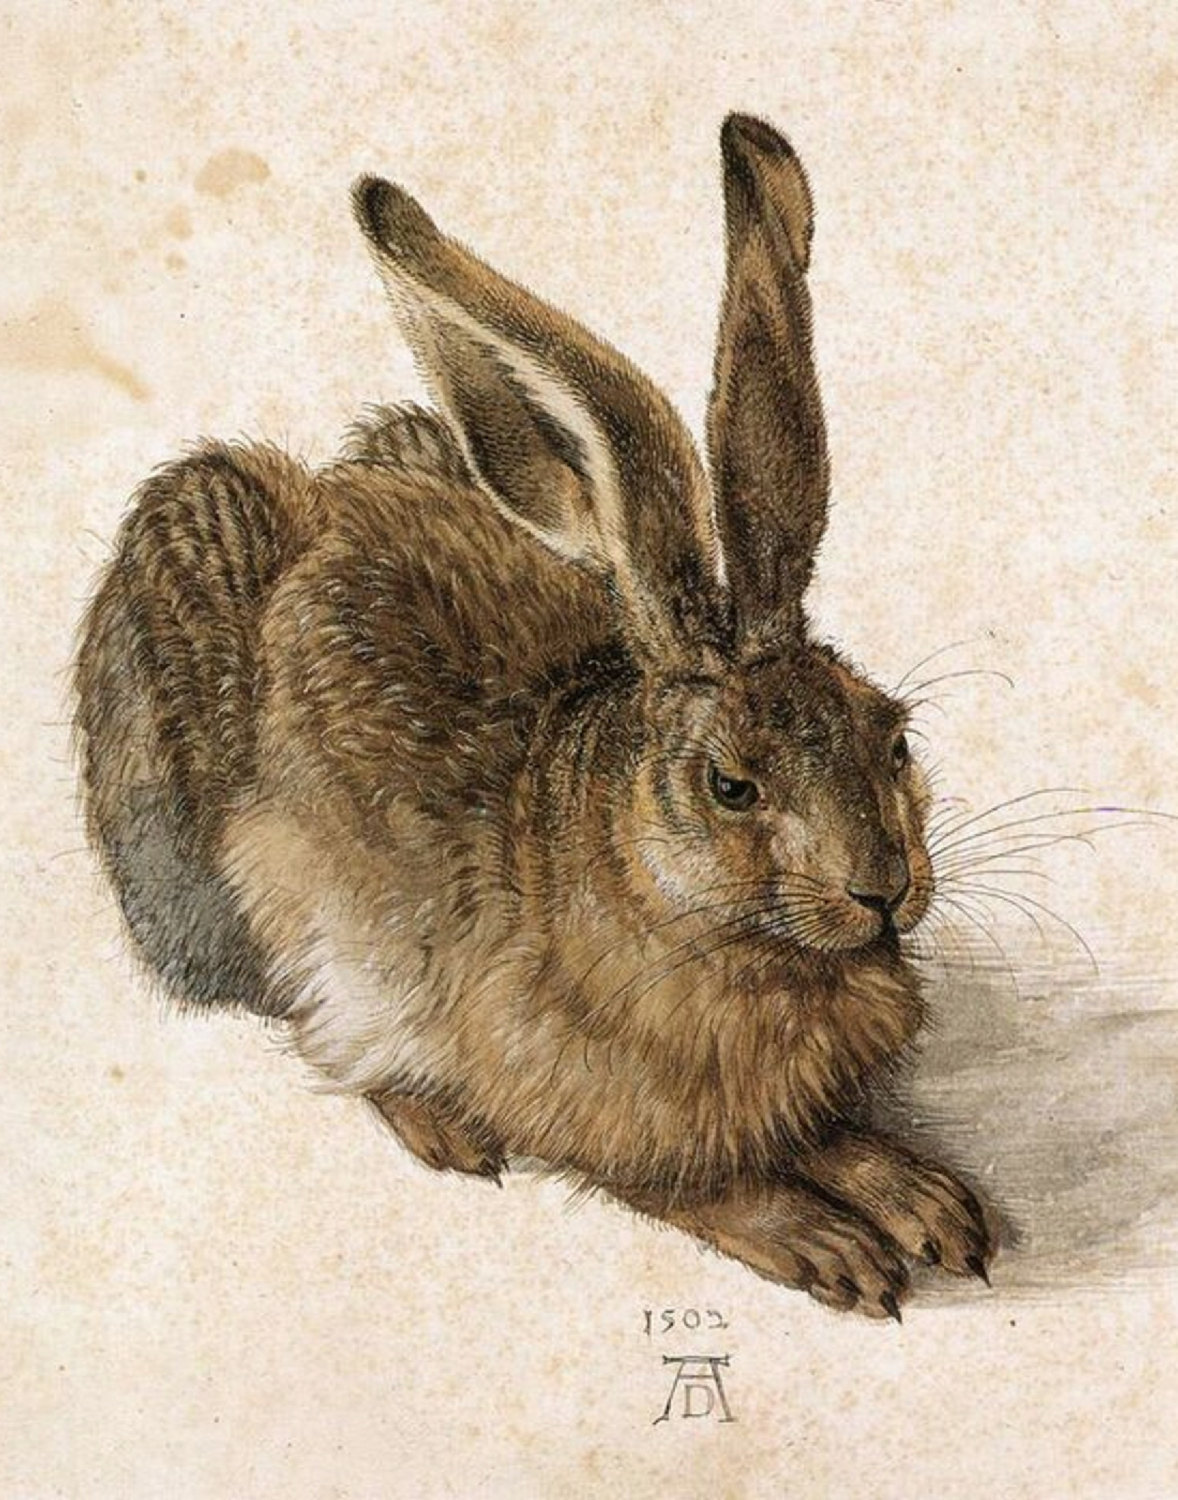 Albrecht Durer-Young Hare,  1500s, rabbits, bunny, animal art print, wildlife ar - $17.49